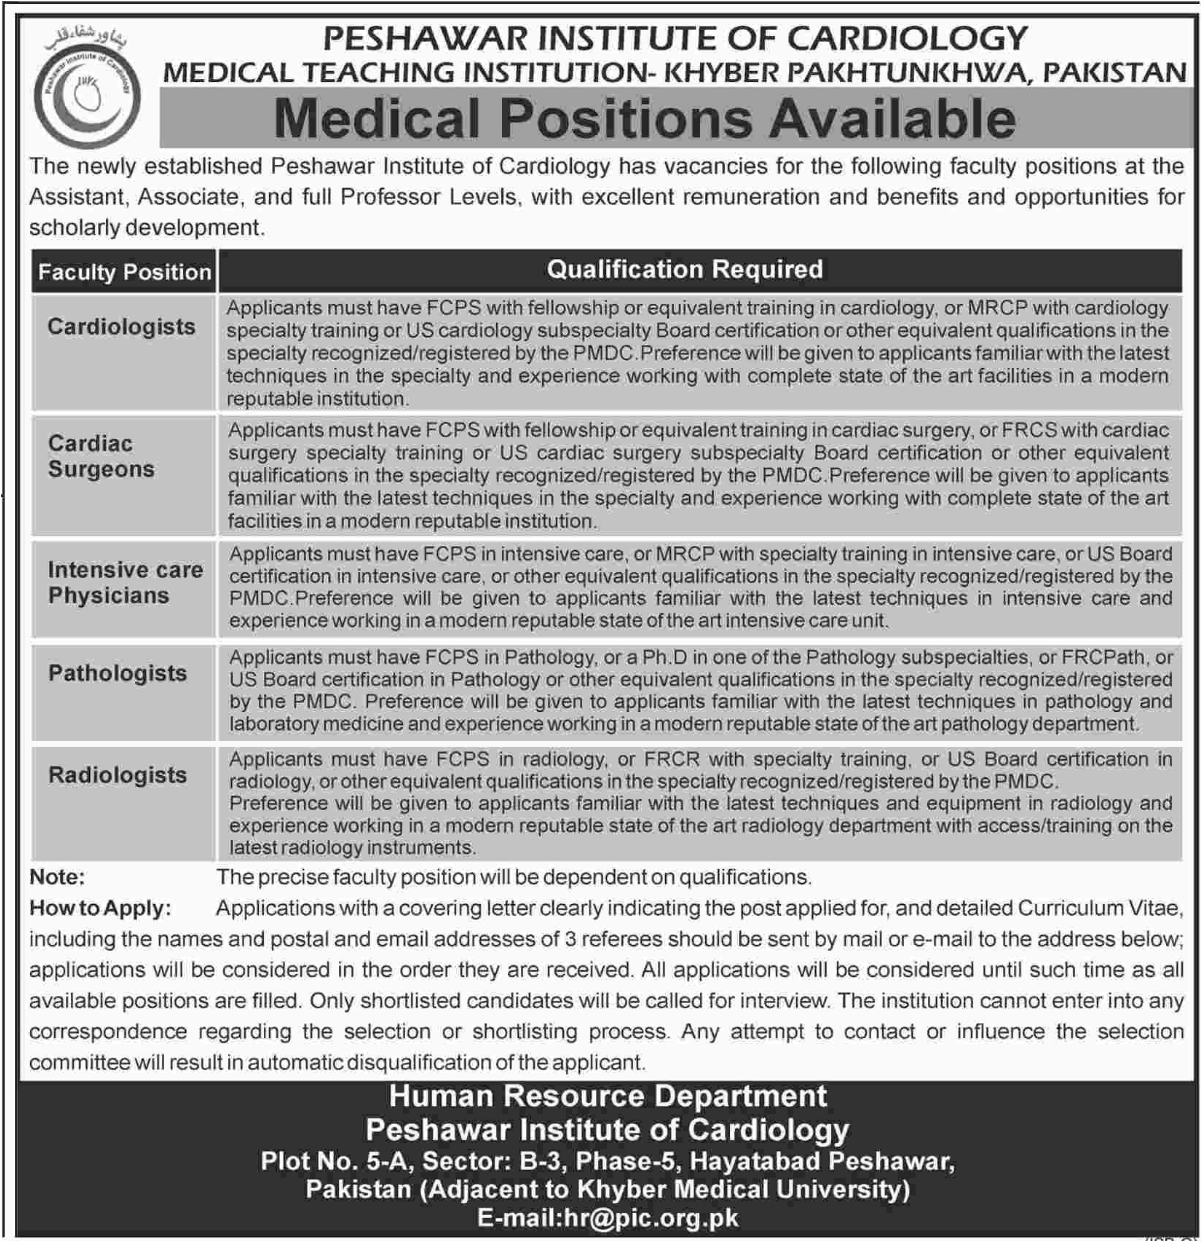 Peshawar Institute of Cardiology Jobs of Cardiologist